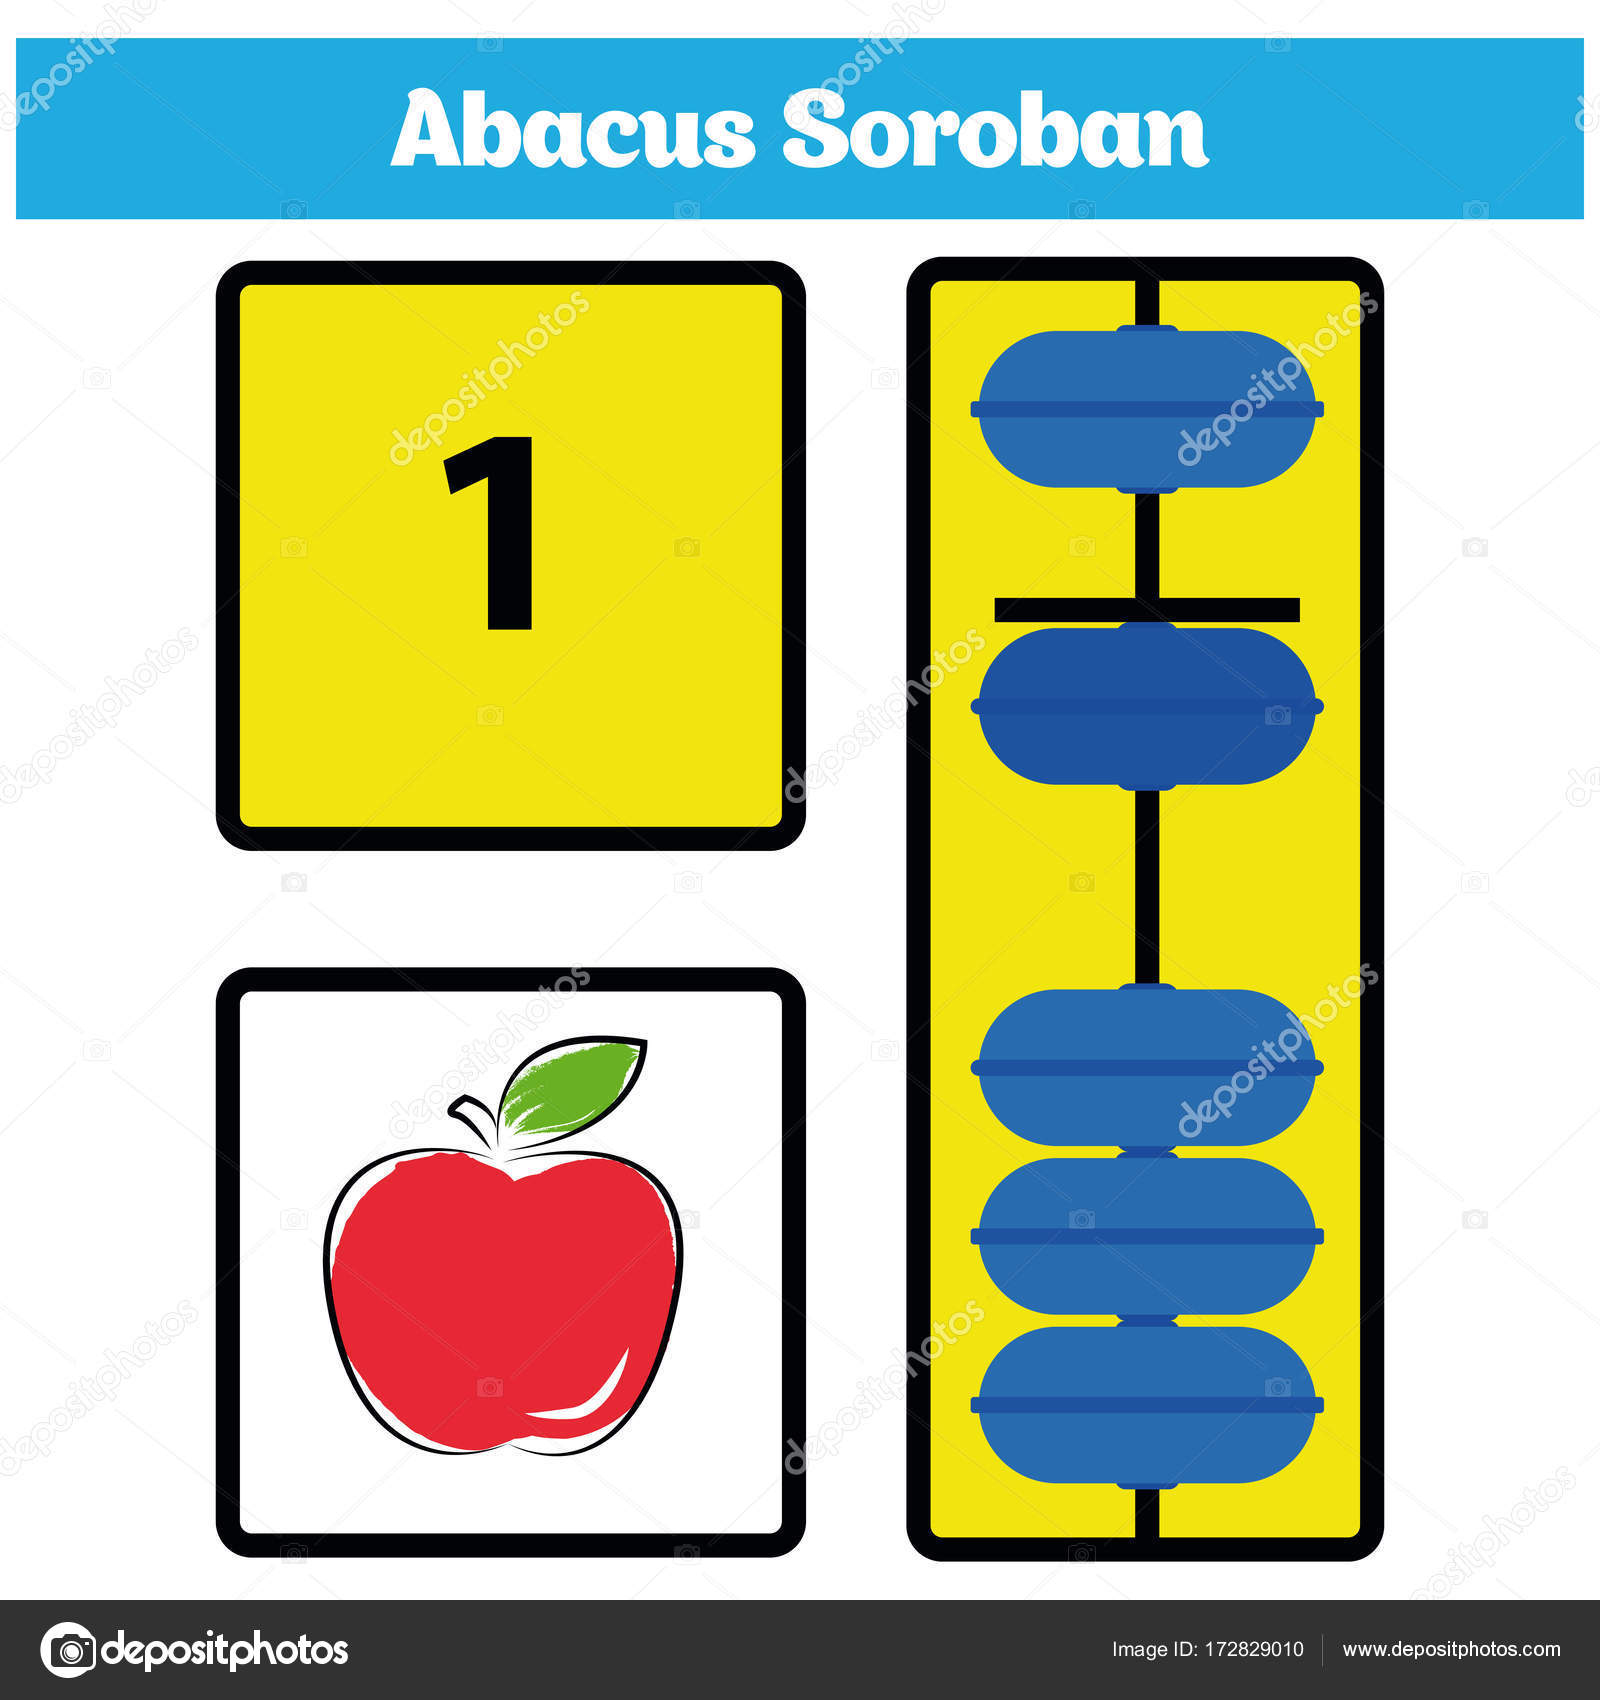 worksheet Abacus Math Worksheets Free abacus soroban kids learn numbers with math worksheet for children vector illustration by artalexandrf y